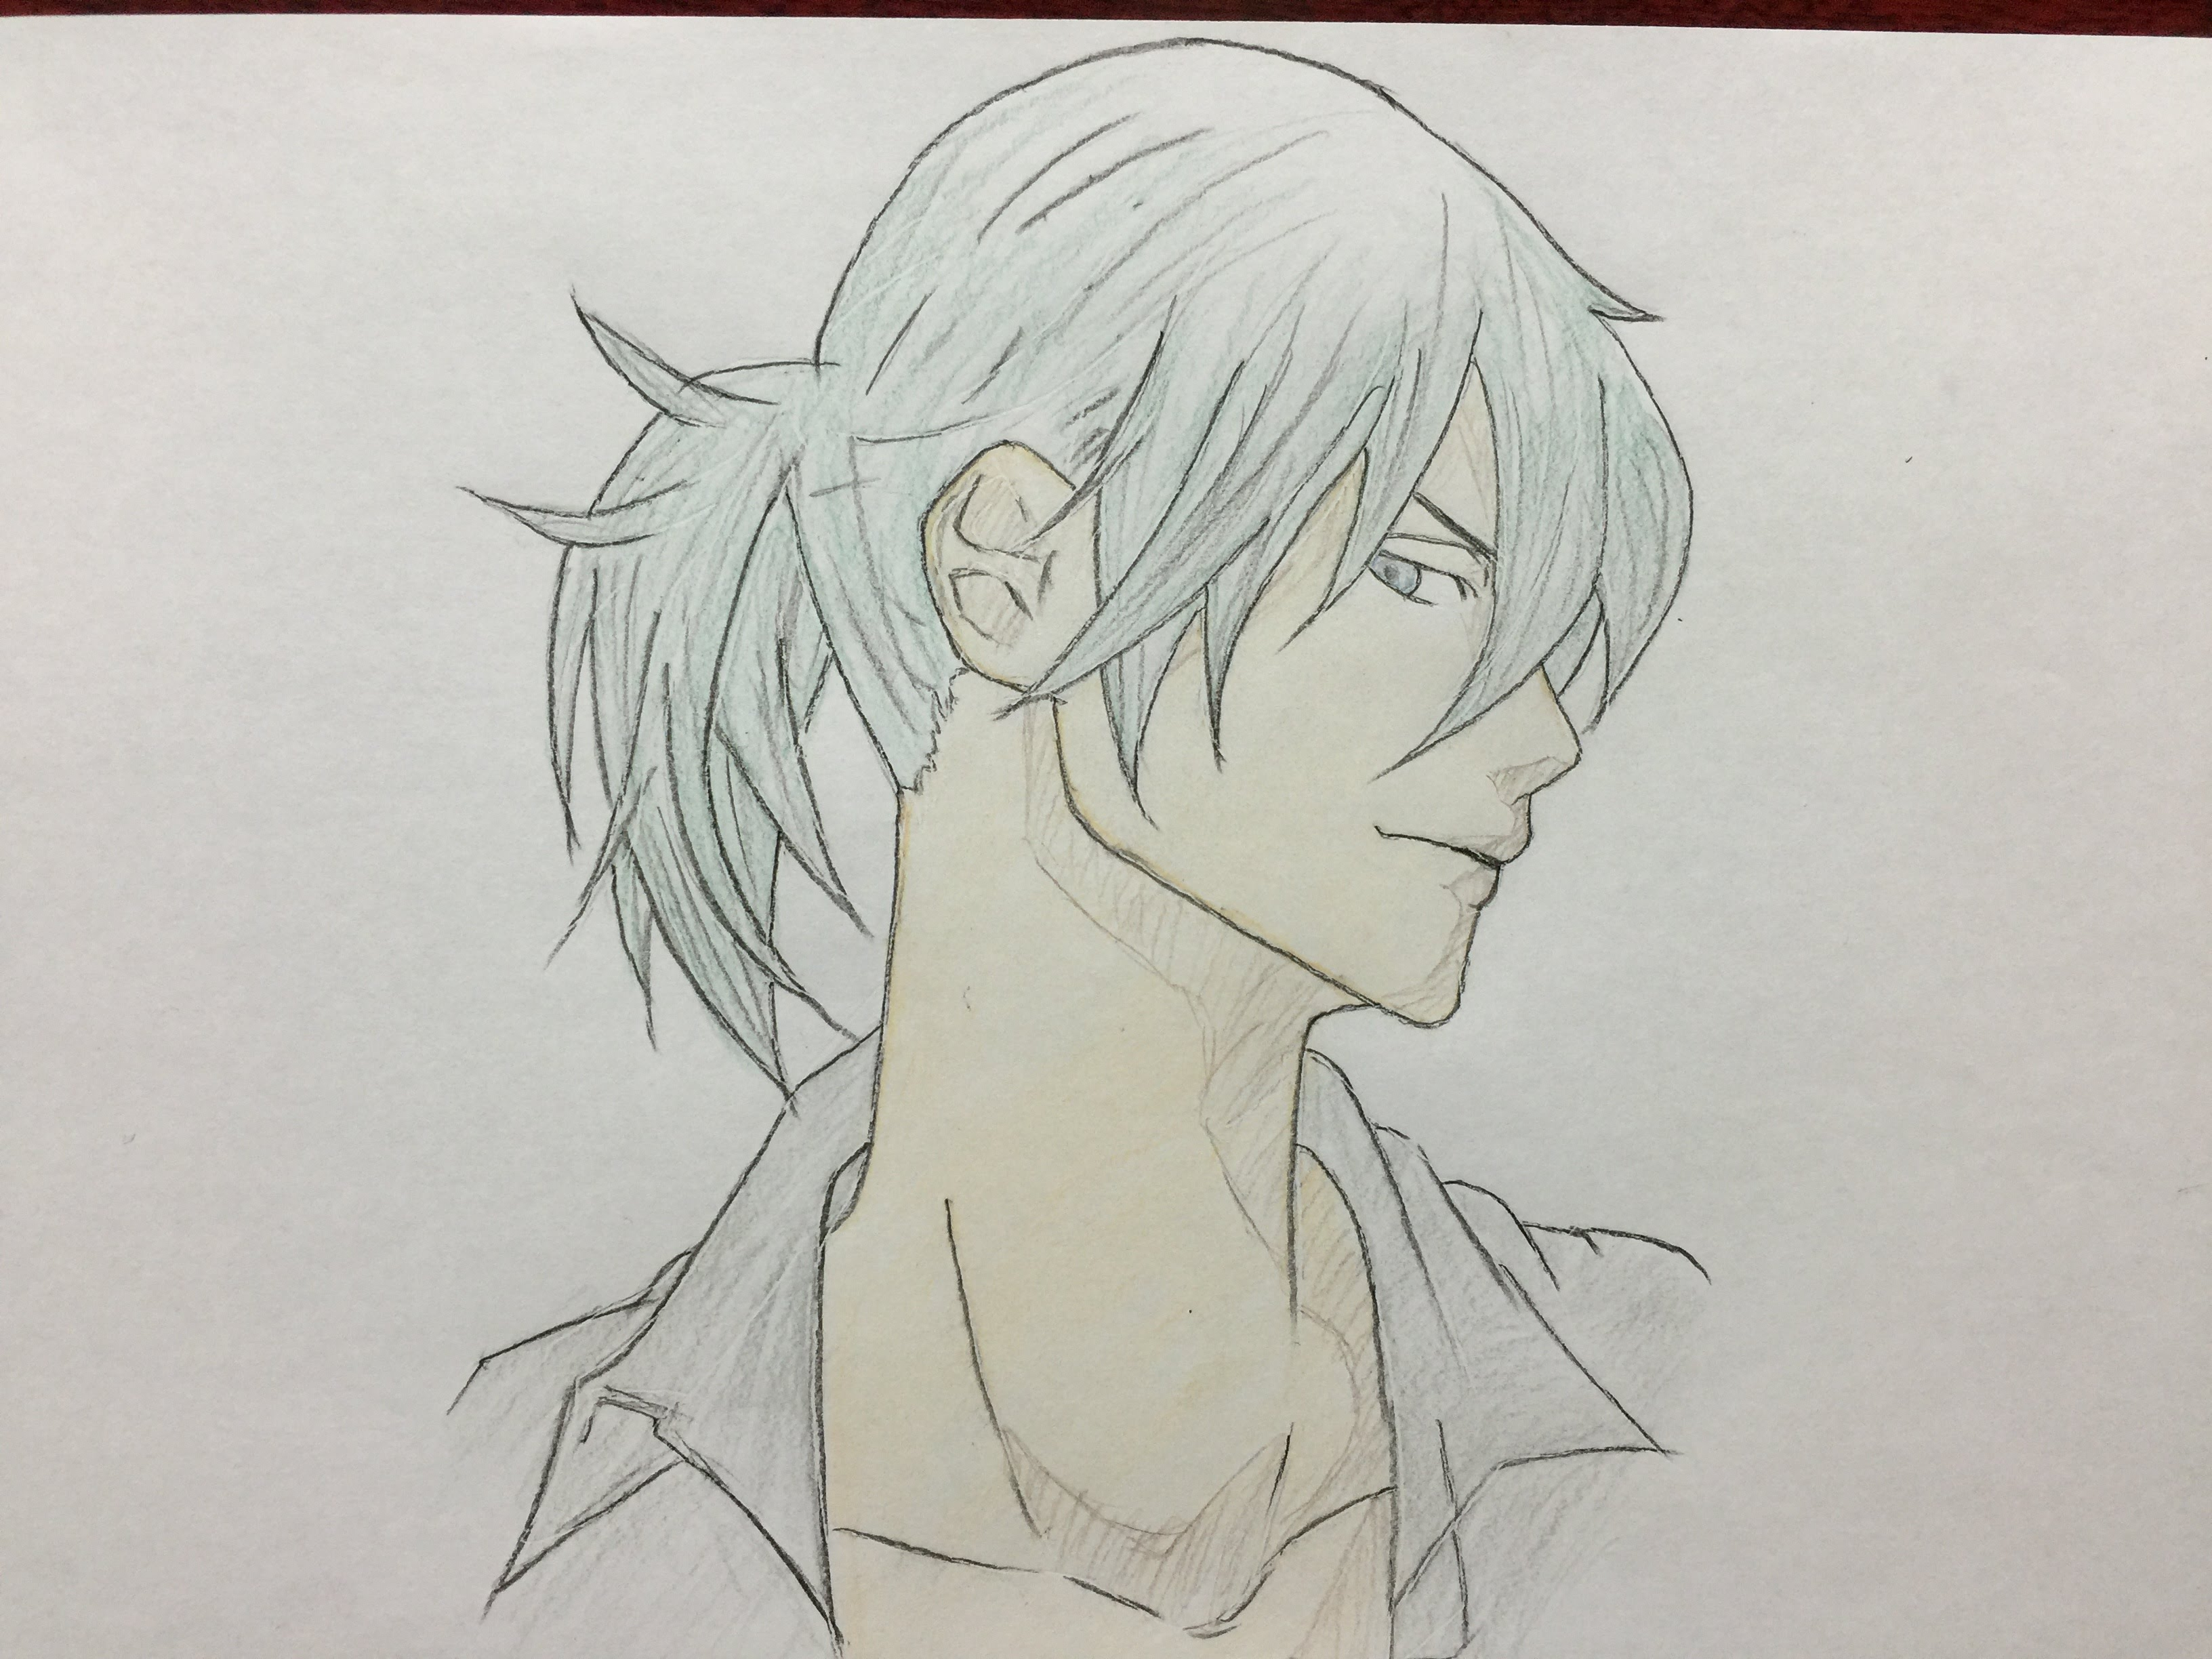 3264x2448 How to draw Manga handsome guy colored pencil